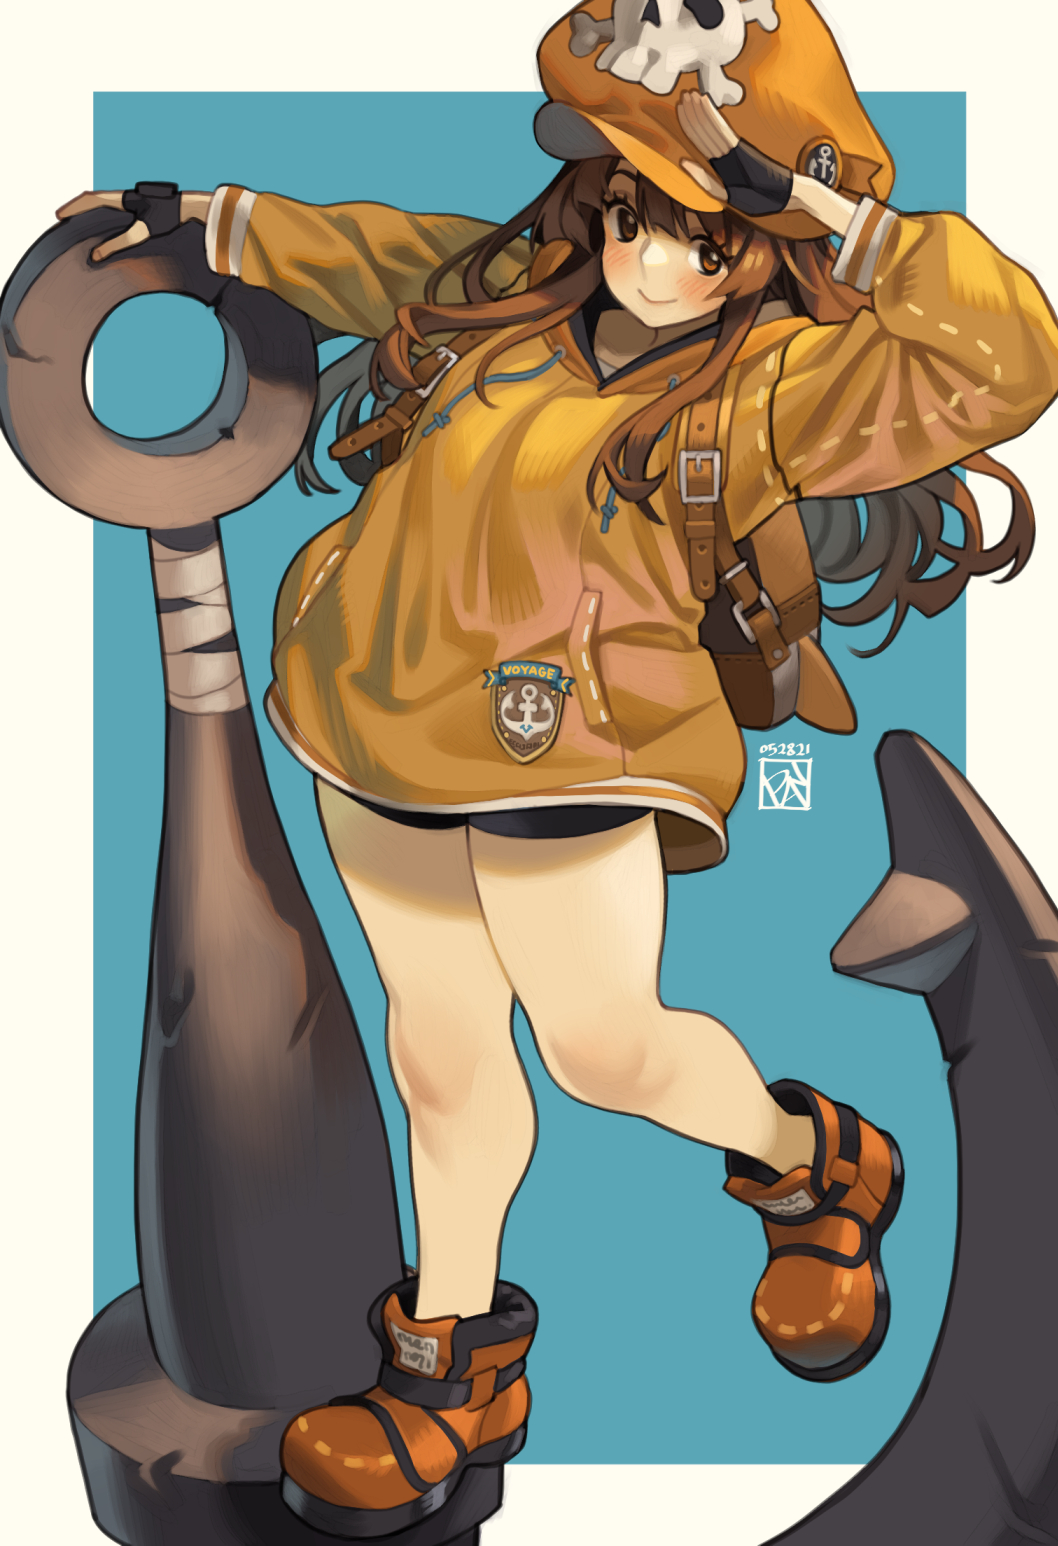 1girl anchor anchor_symbol backpack bag bare_legs bike_shorts black_gloves blue_background brown_eyes brown_hair cabbie_hat dated duplicate fingerless_gloves gloves guilty_gear guilty_gear_strive hat highres jacket long_hair may_(guilty_gear) orange_headwear orange_jacket pirate pirate_hat pixel-perfect_duplicate poch4n salute signature skull_and_crossbones smile solo thick_thighs thighs